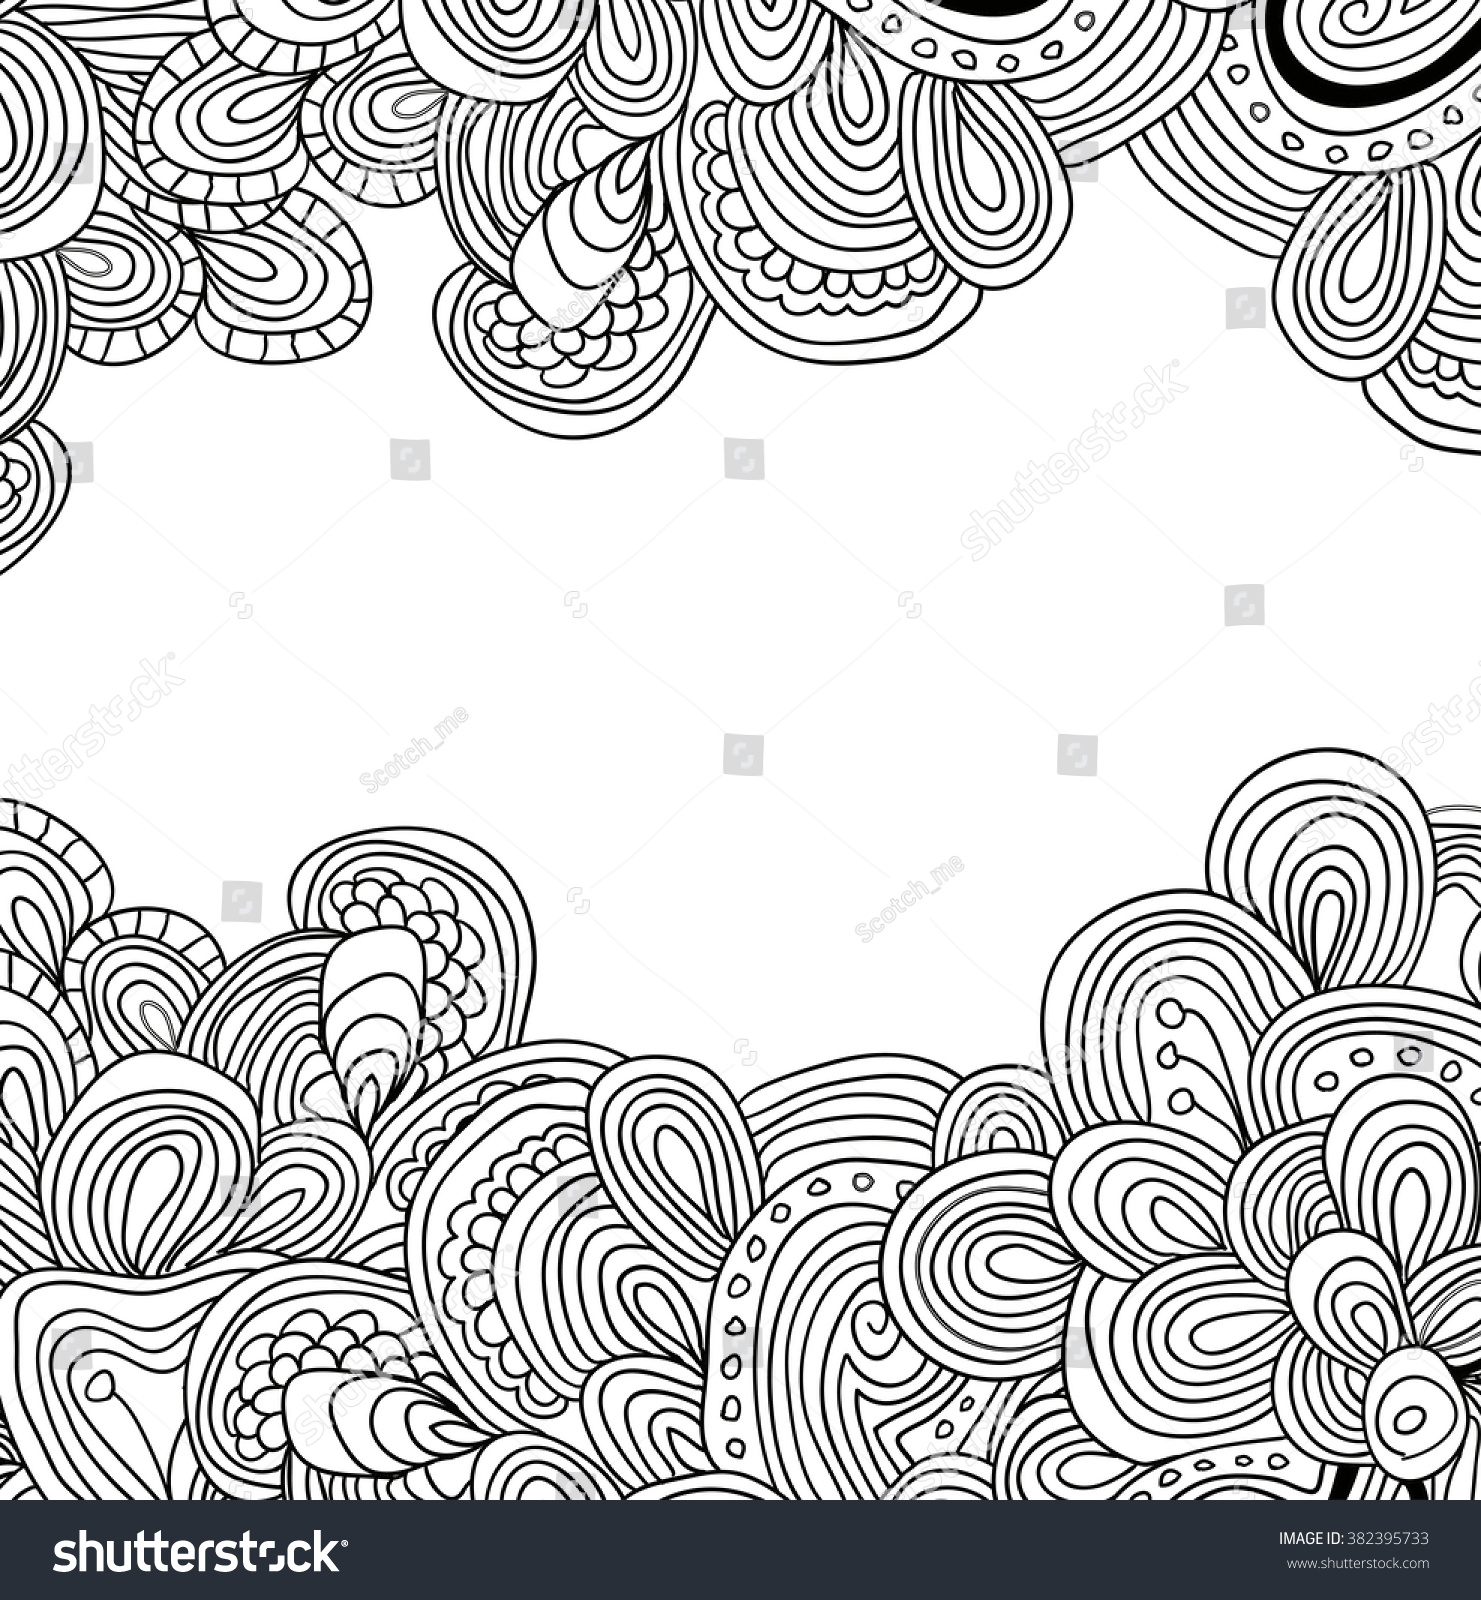 Coloring Book Page For Adults Mandala With Vintage Flowers Pattern Zendala Zentagle